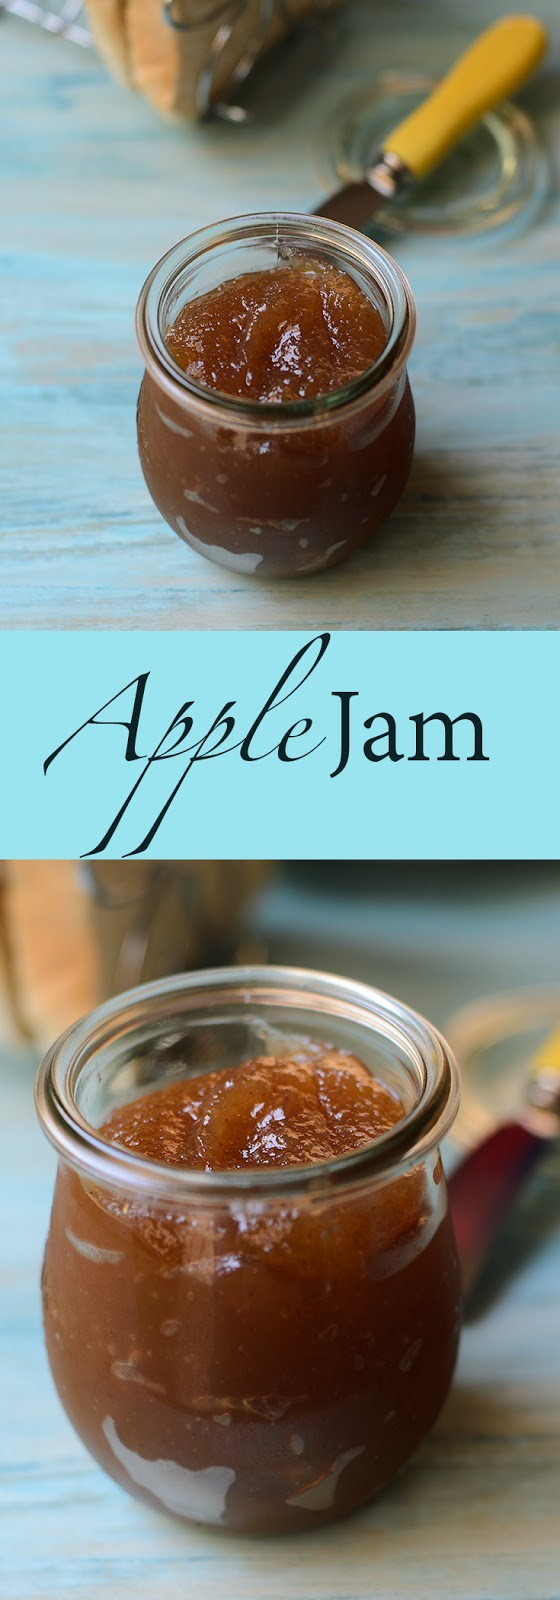 Homemade apple jam recipe. Apple jam or also known as apple butter, marvellous to serve with scones or just spread on buttered toast. An excellent way to use up apples in the pantry.